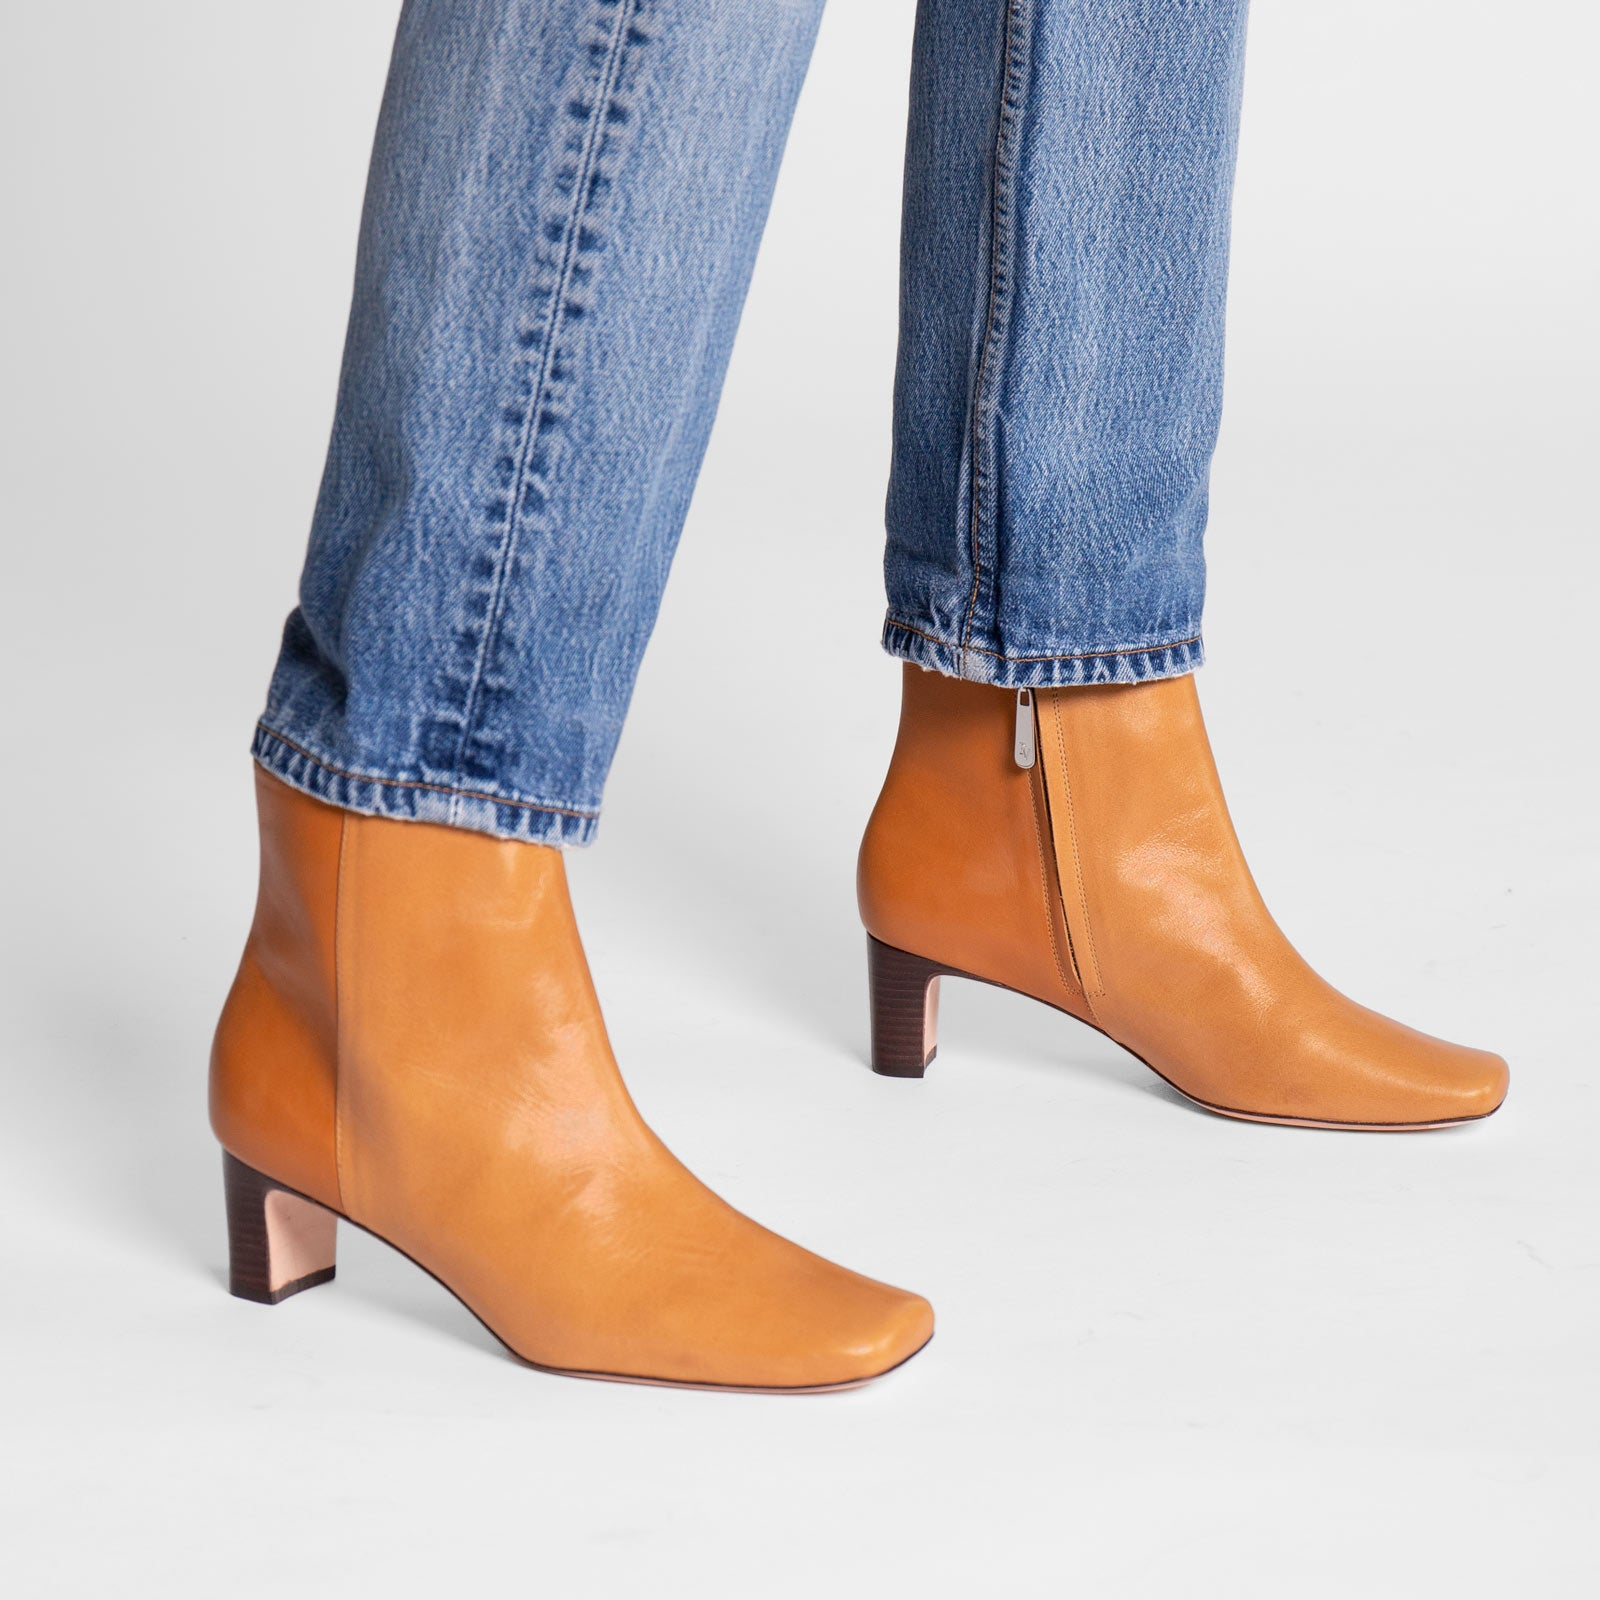 Eleanor Boot Naplak Caramel